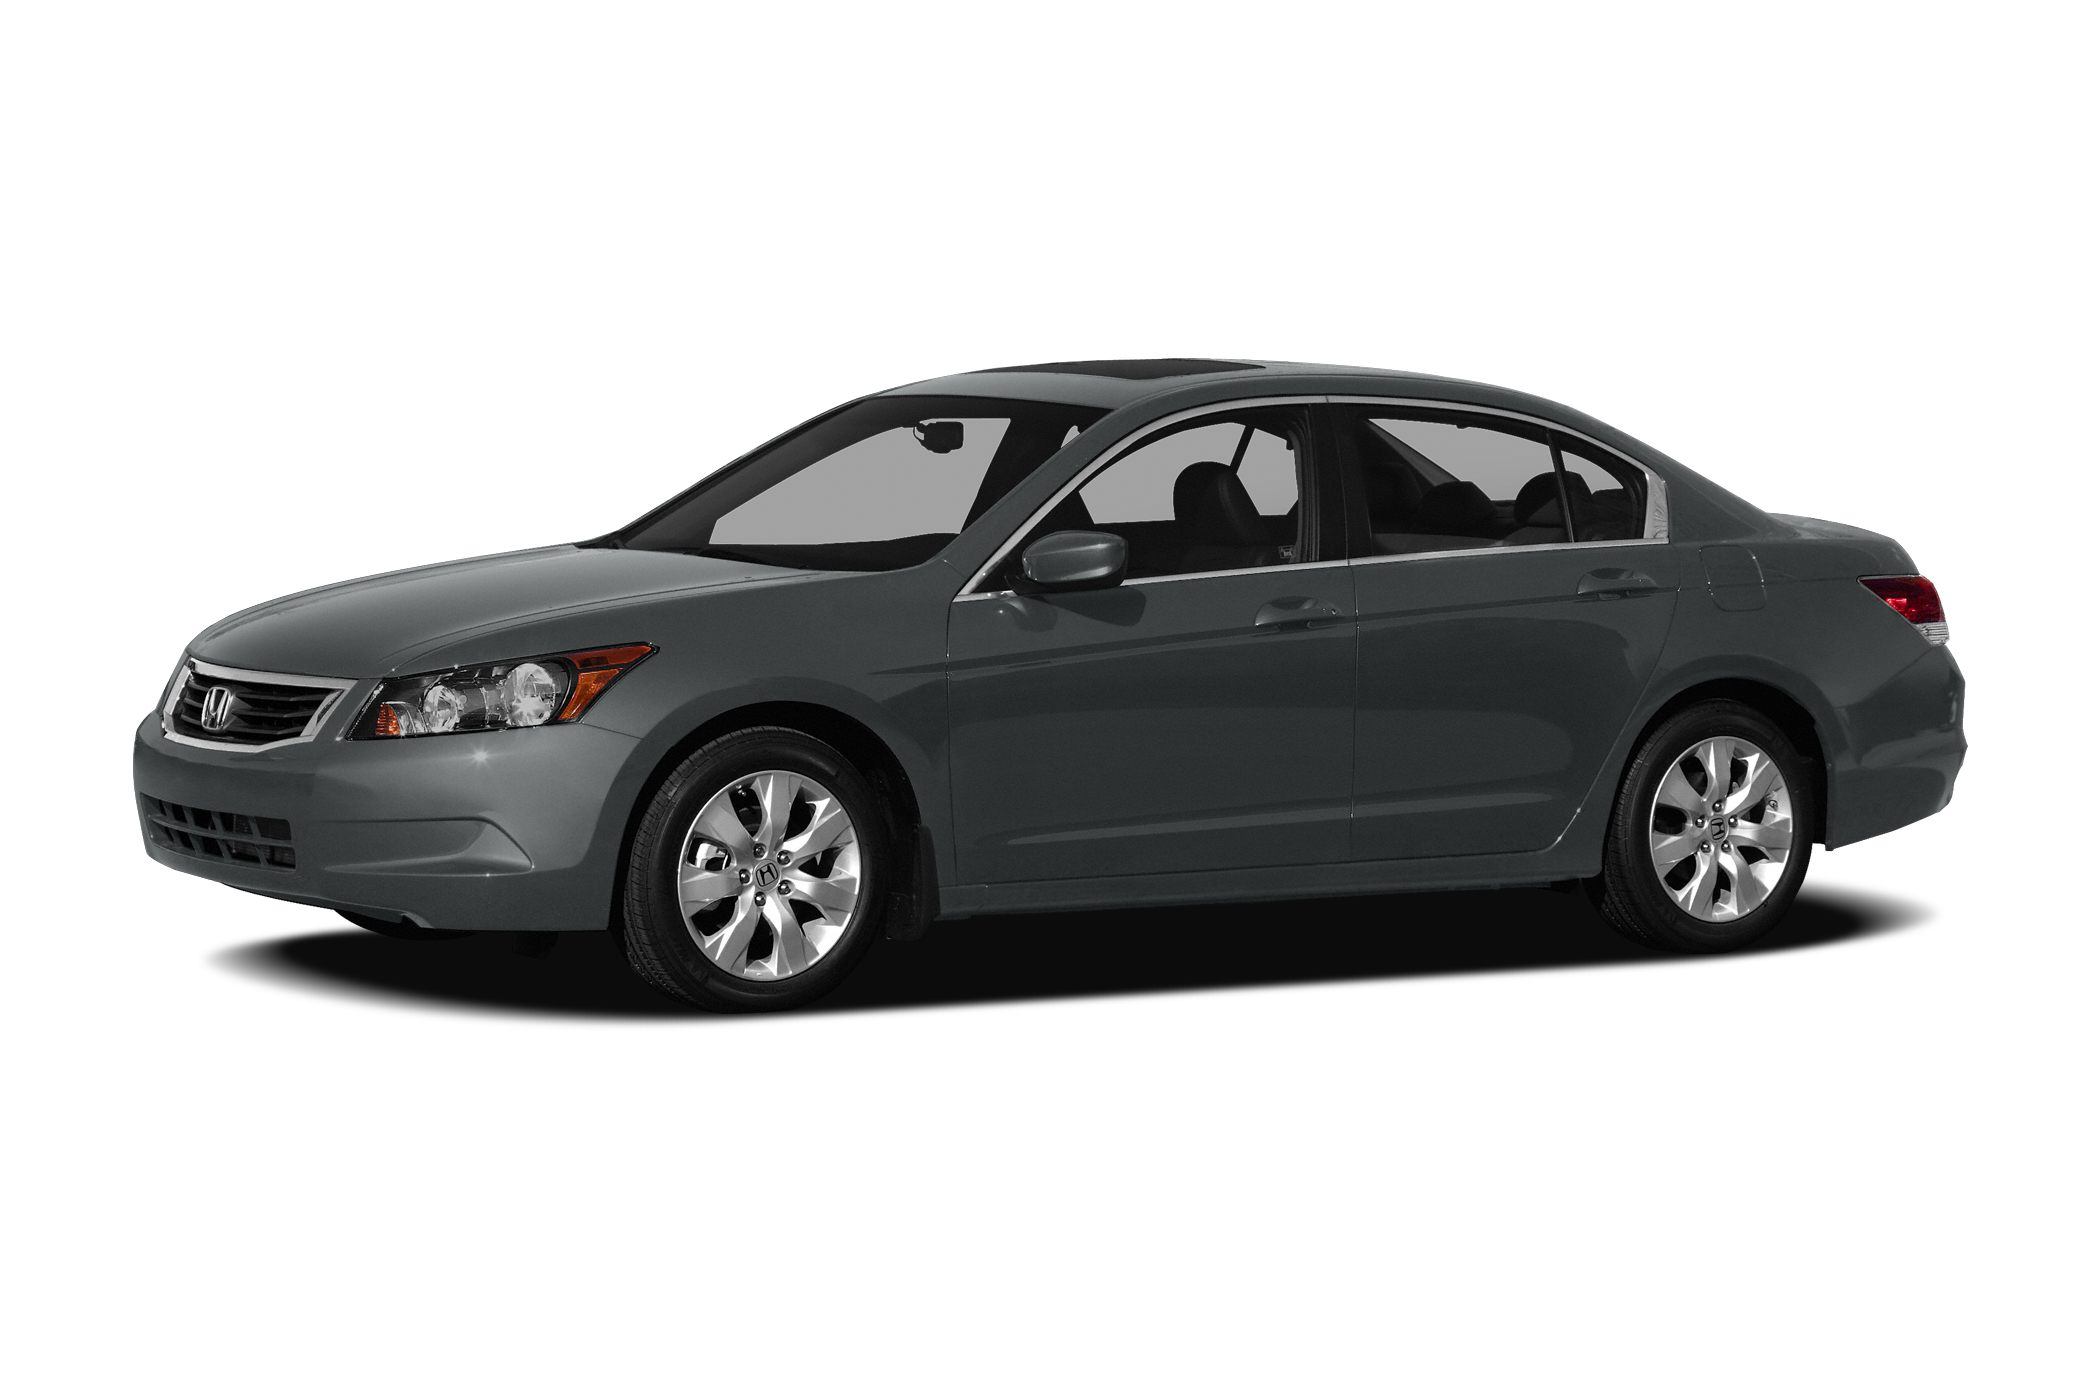 2010 Honda Accord LX Sedan for sale in Beckley for $16,875 with 50,239 miles